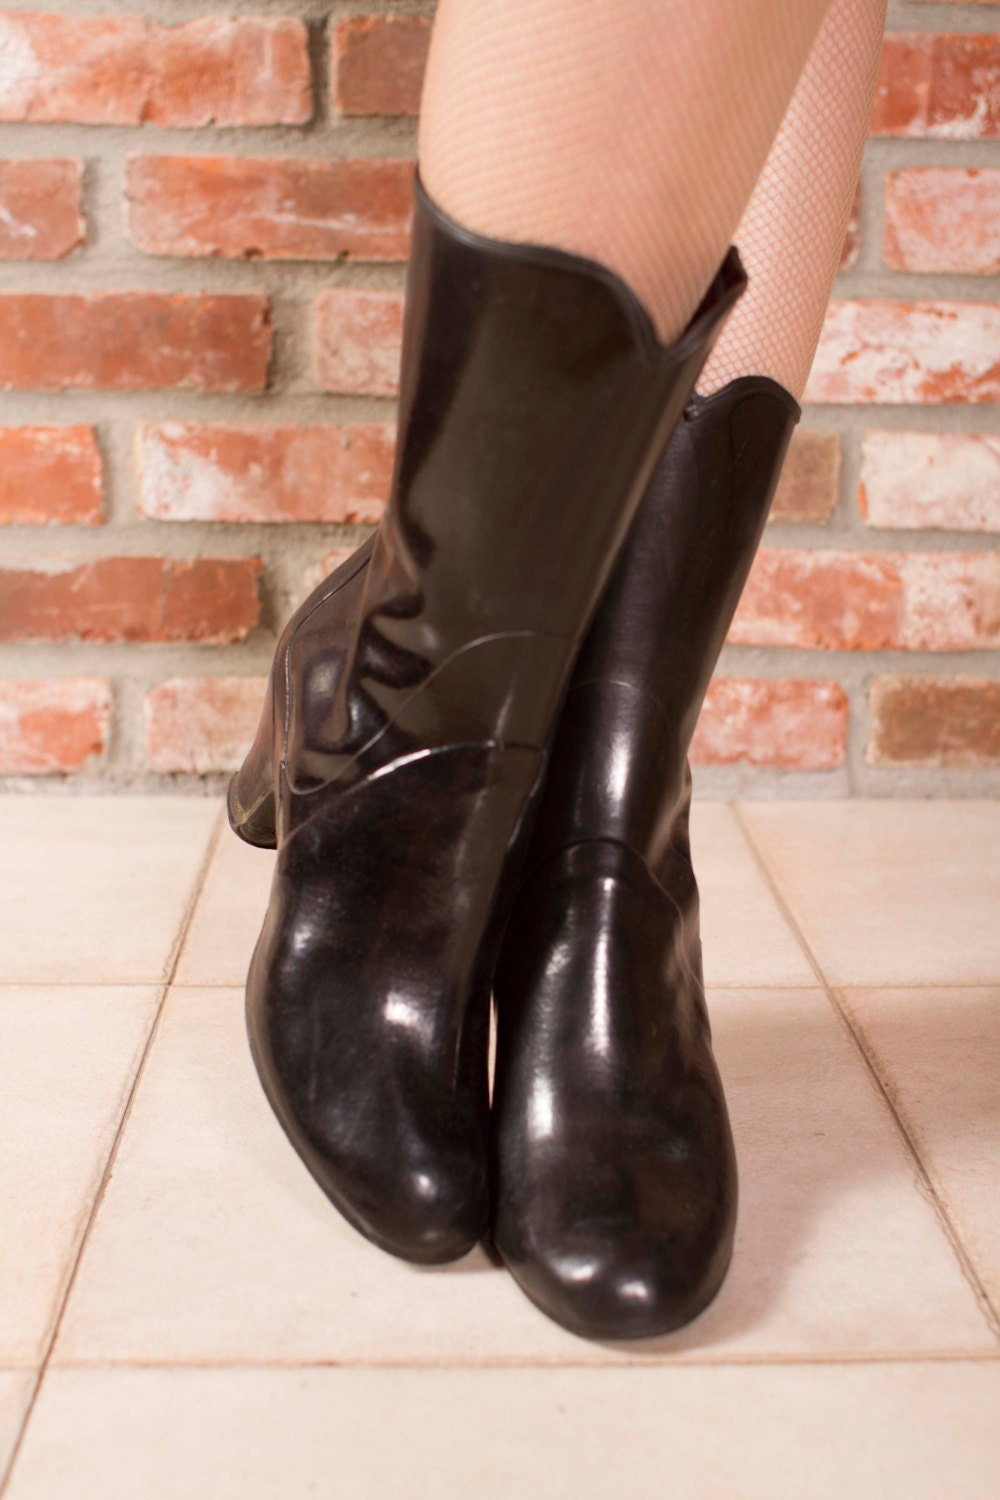 vintage 1940s boots shiny black rubber shoe cover galoshes